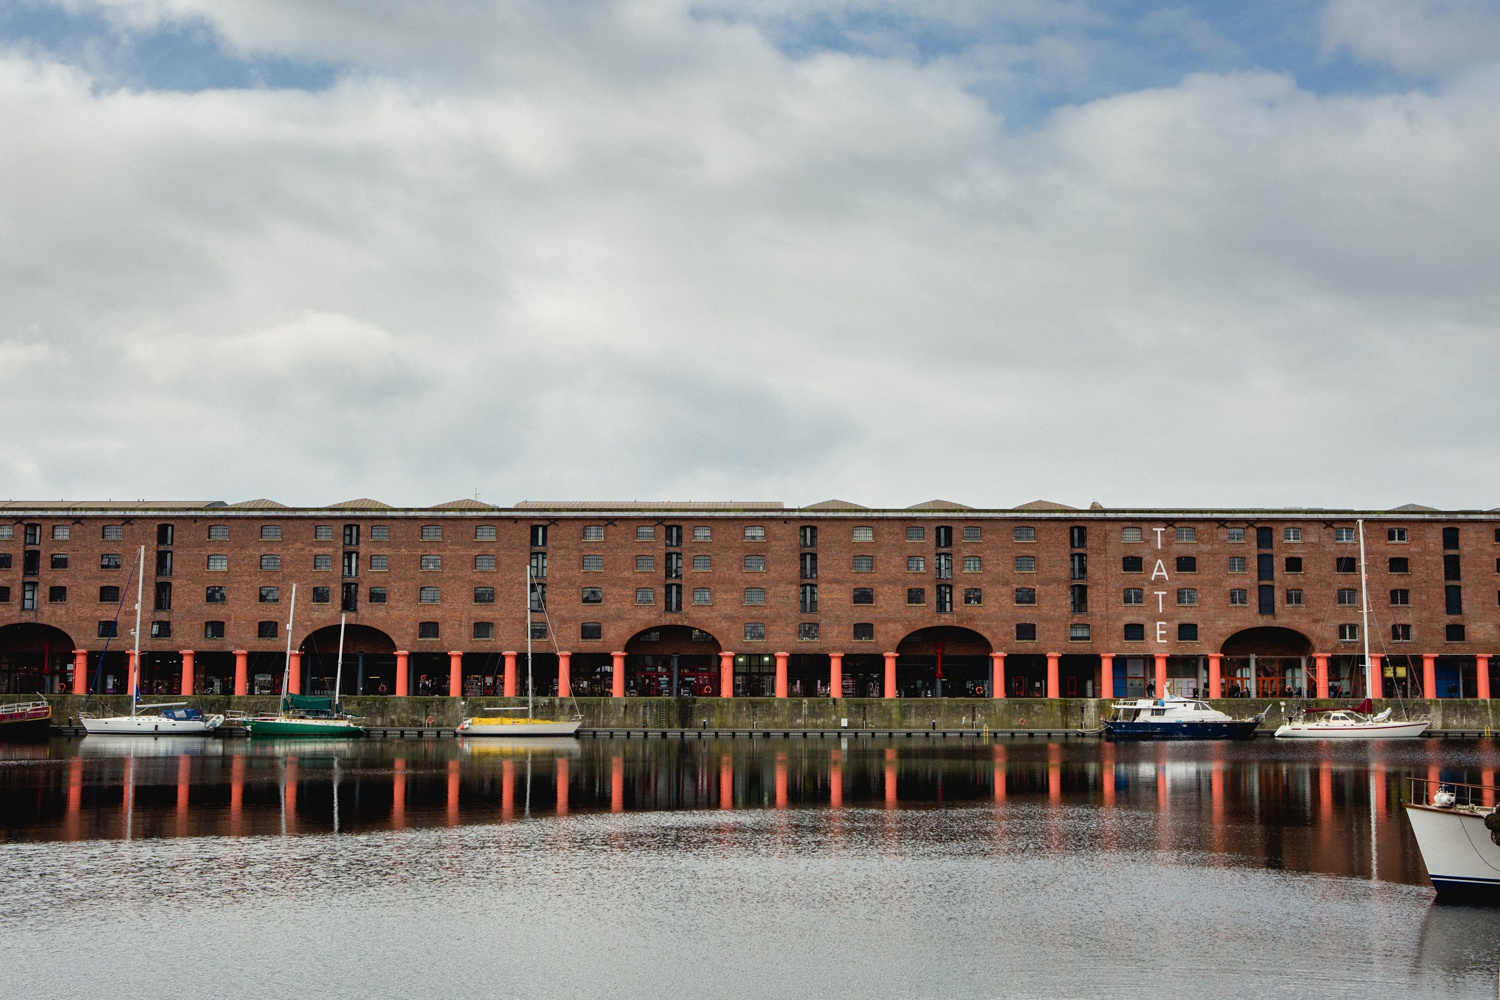 Liverpool docks and tate travel photographer